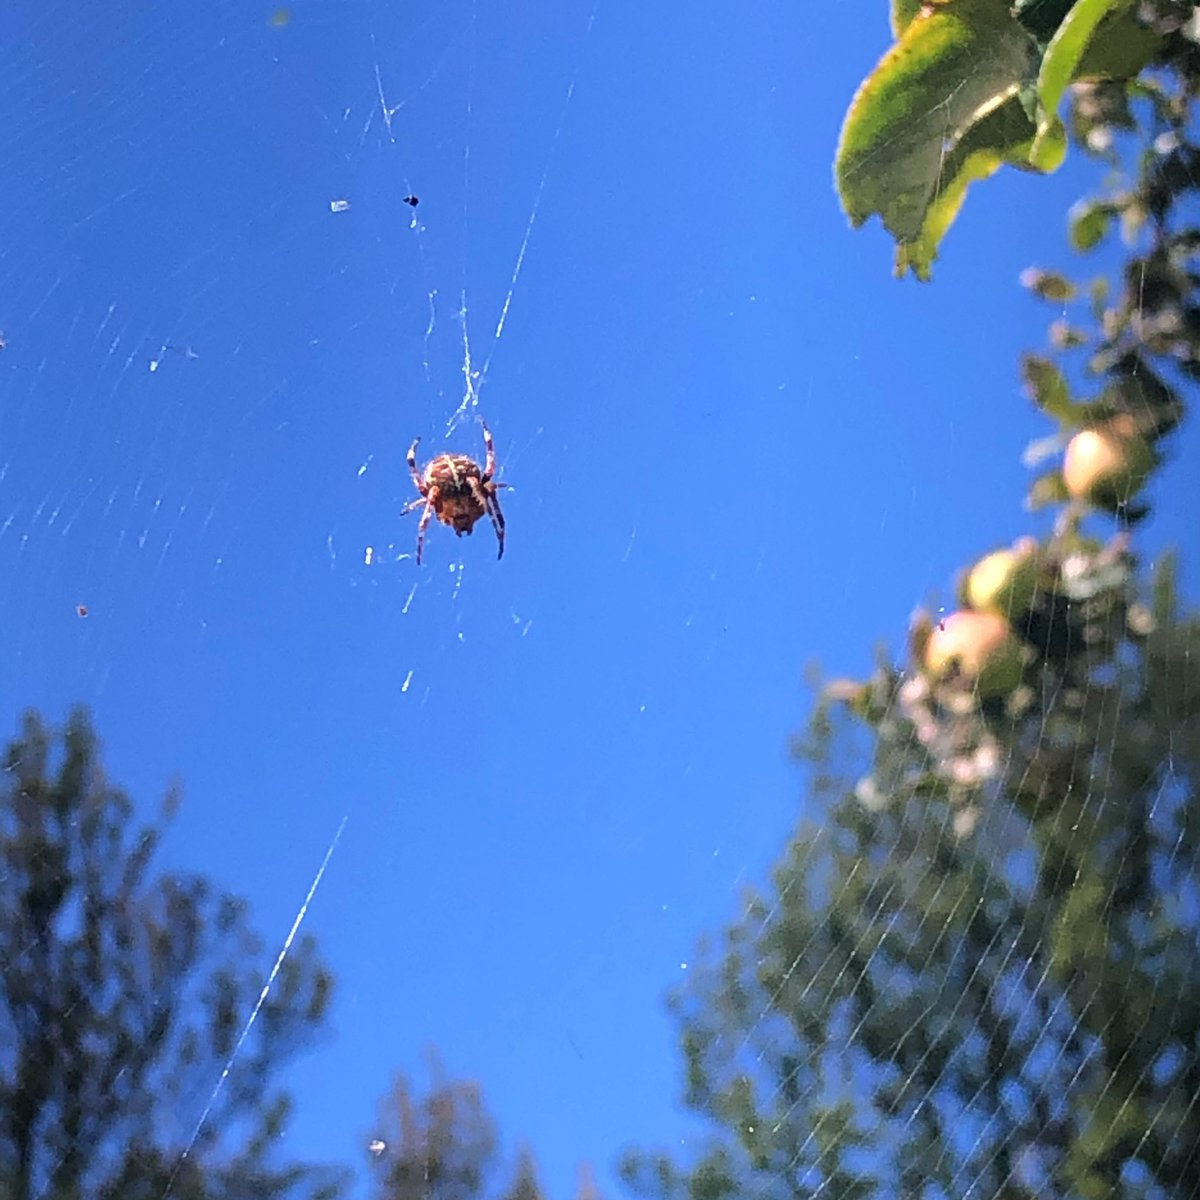 Made an apple picking friend🕷If you haven't heard already we have an orchard full of apples that need picking and taking home! ⠀ ⠀ Pick up a bag from our courtyard for £1.50 and fill with apples from over 100 different varieties - Enjoy!🌞🍎⠀ https://t.co/UioTebWoRH